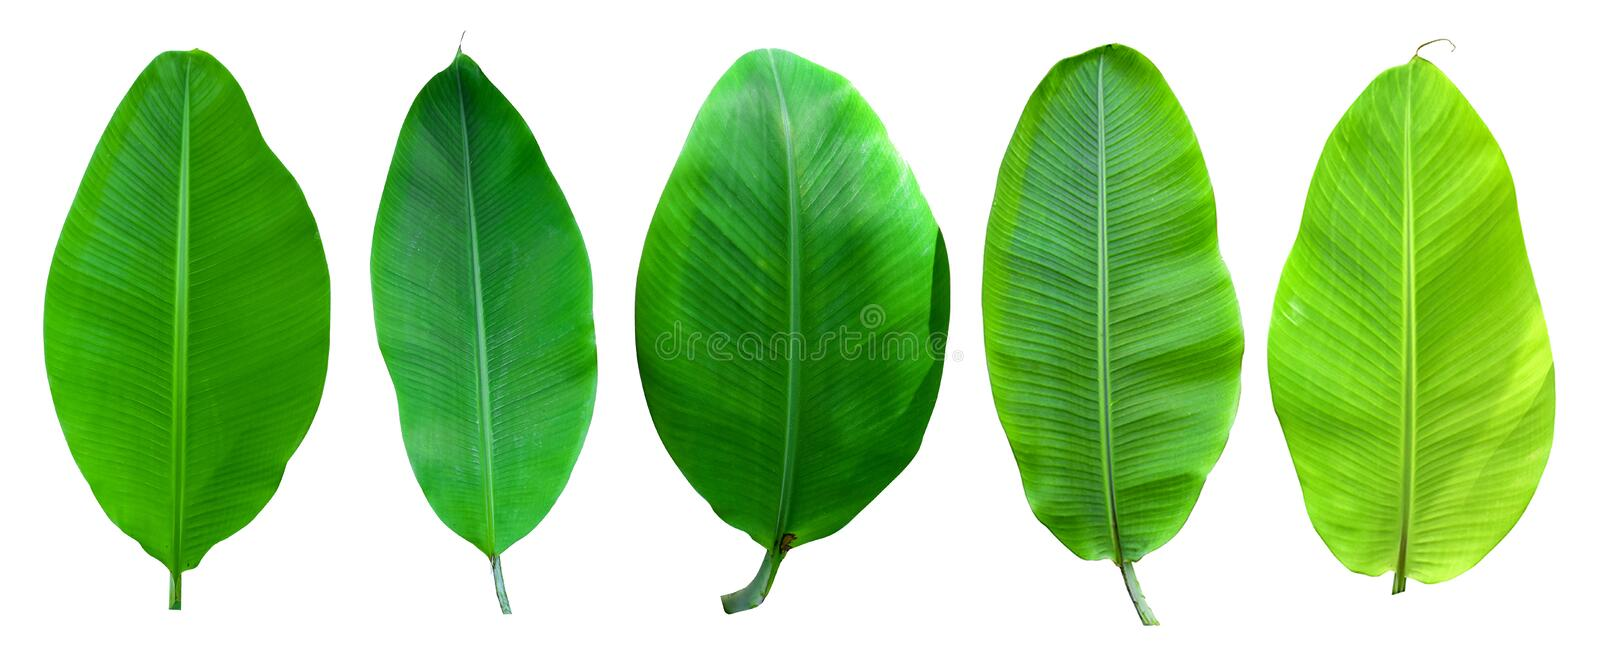 Banana palm tree collection isolated on a white background.Banana leaves and banana bunch for graphic design.Tropical fruits are e. Asy to grow and are popular stock photo